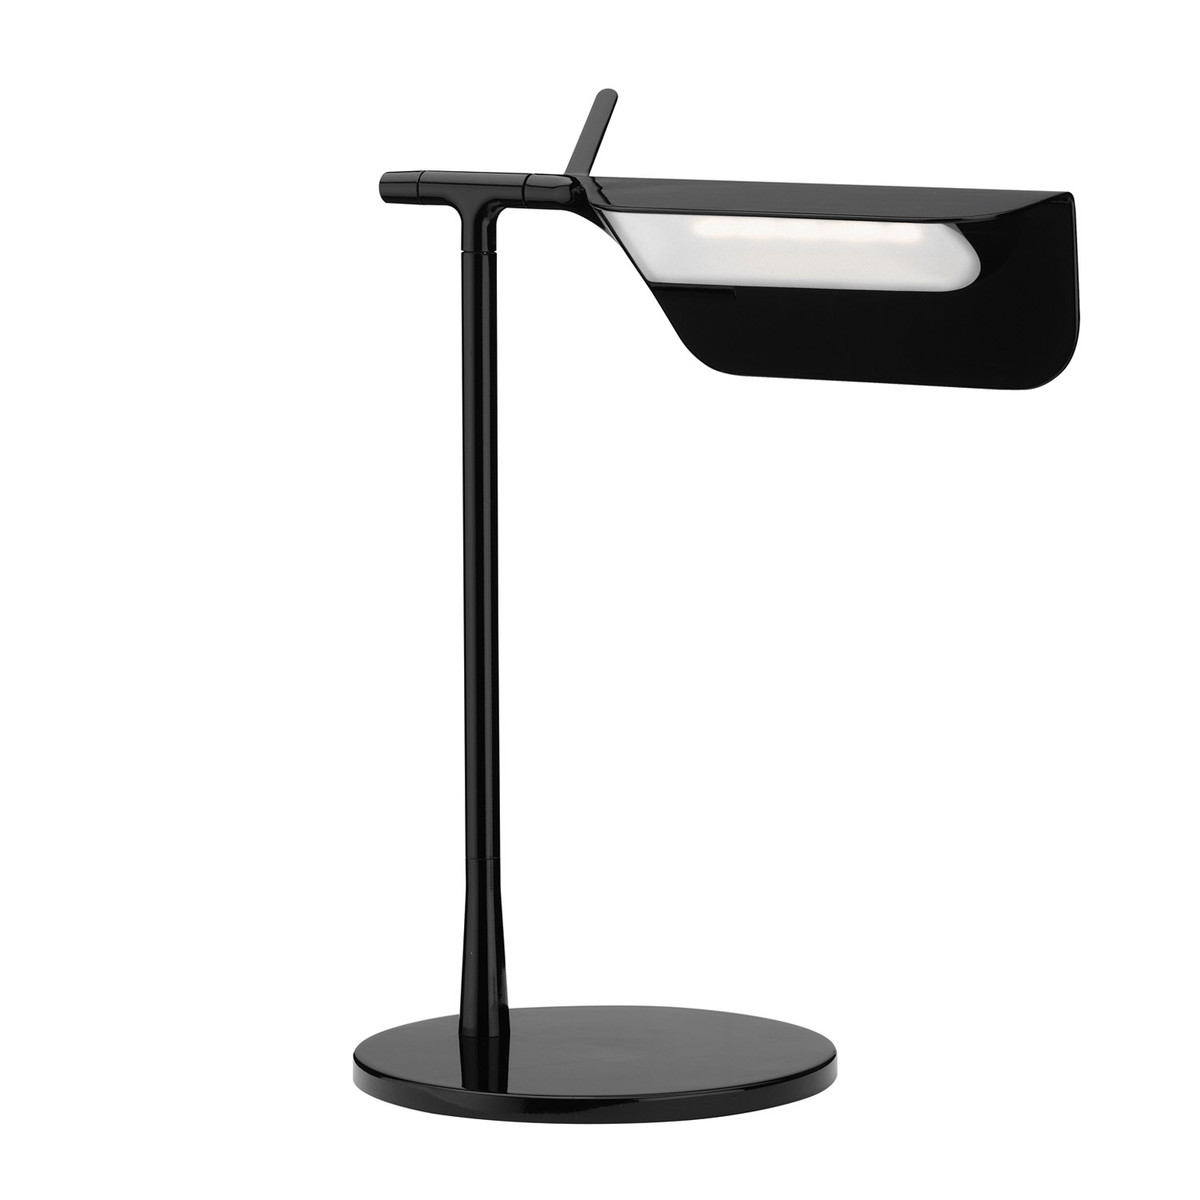 Tab T LED Table Lamp 32,7cm LED 5w Black Shiny